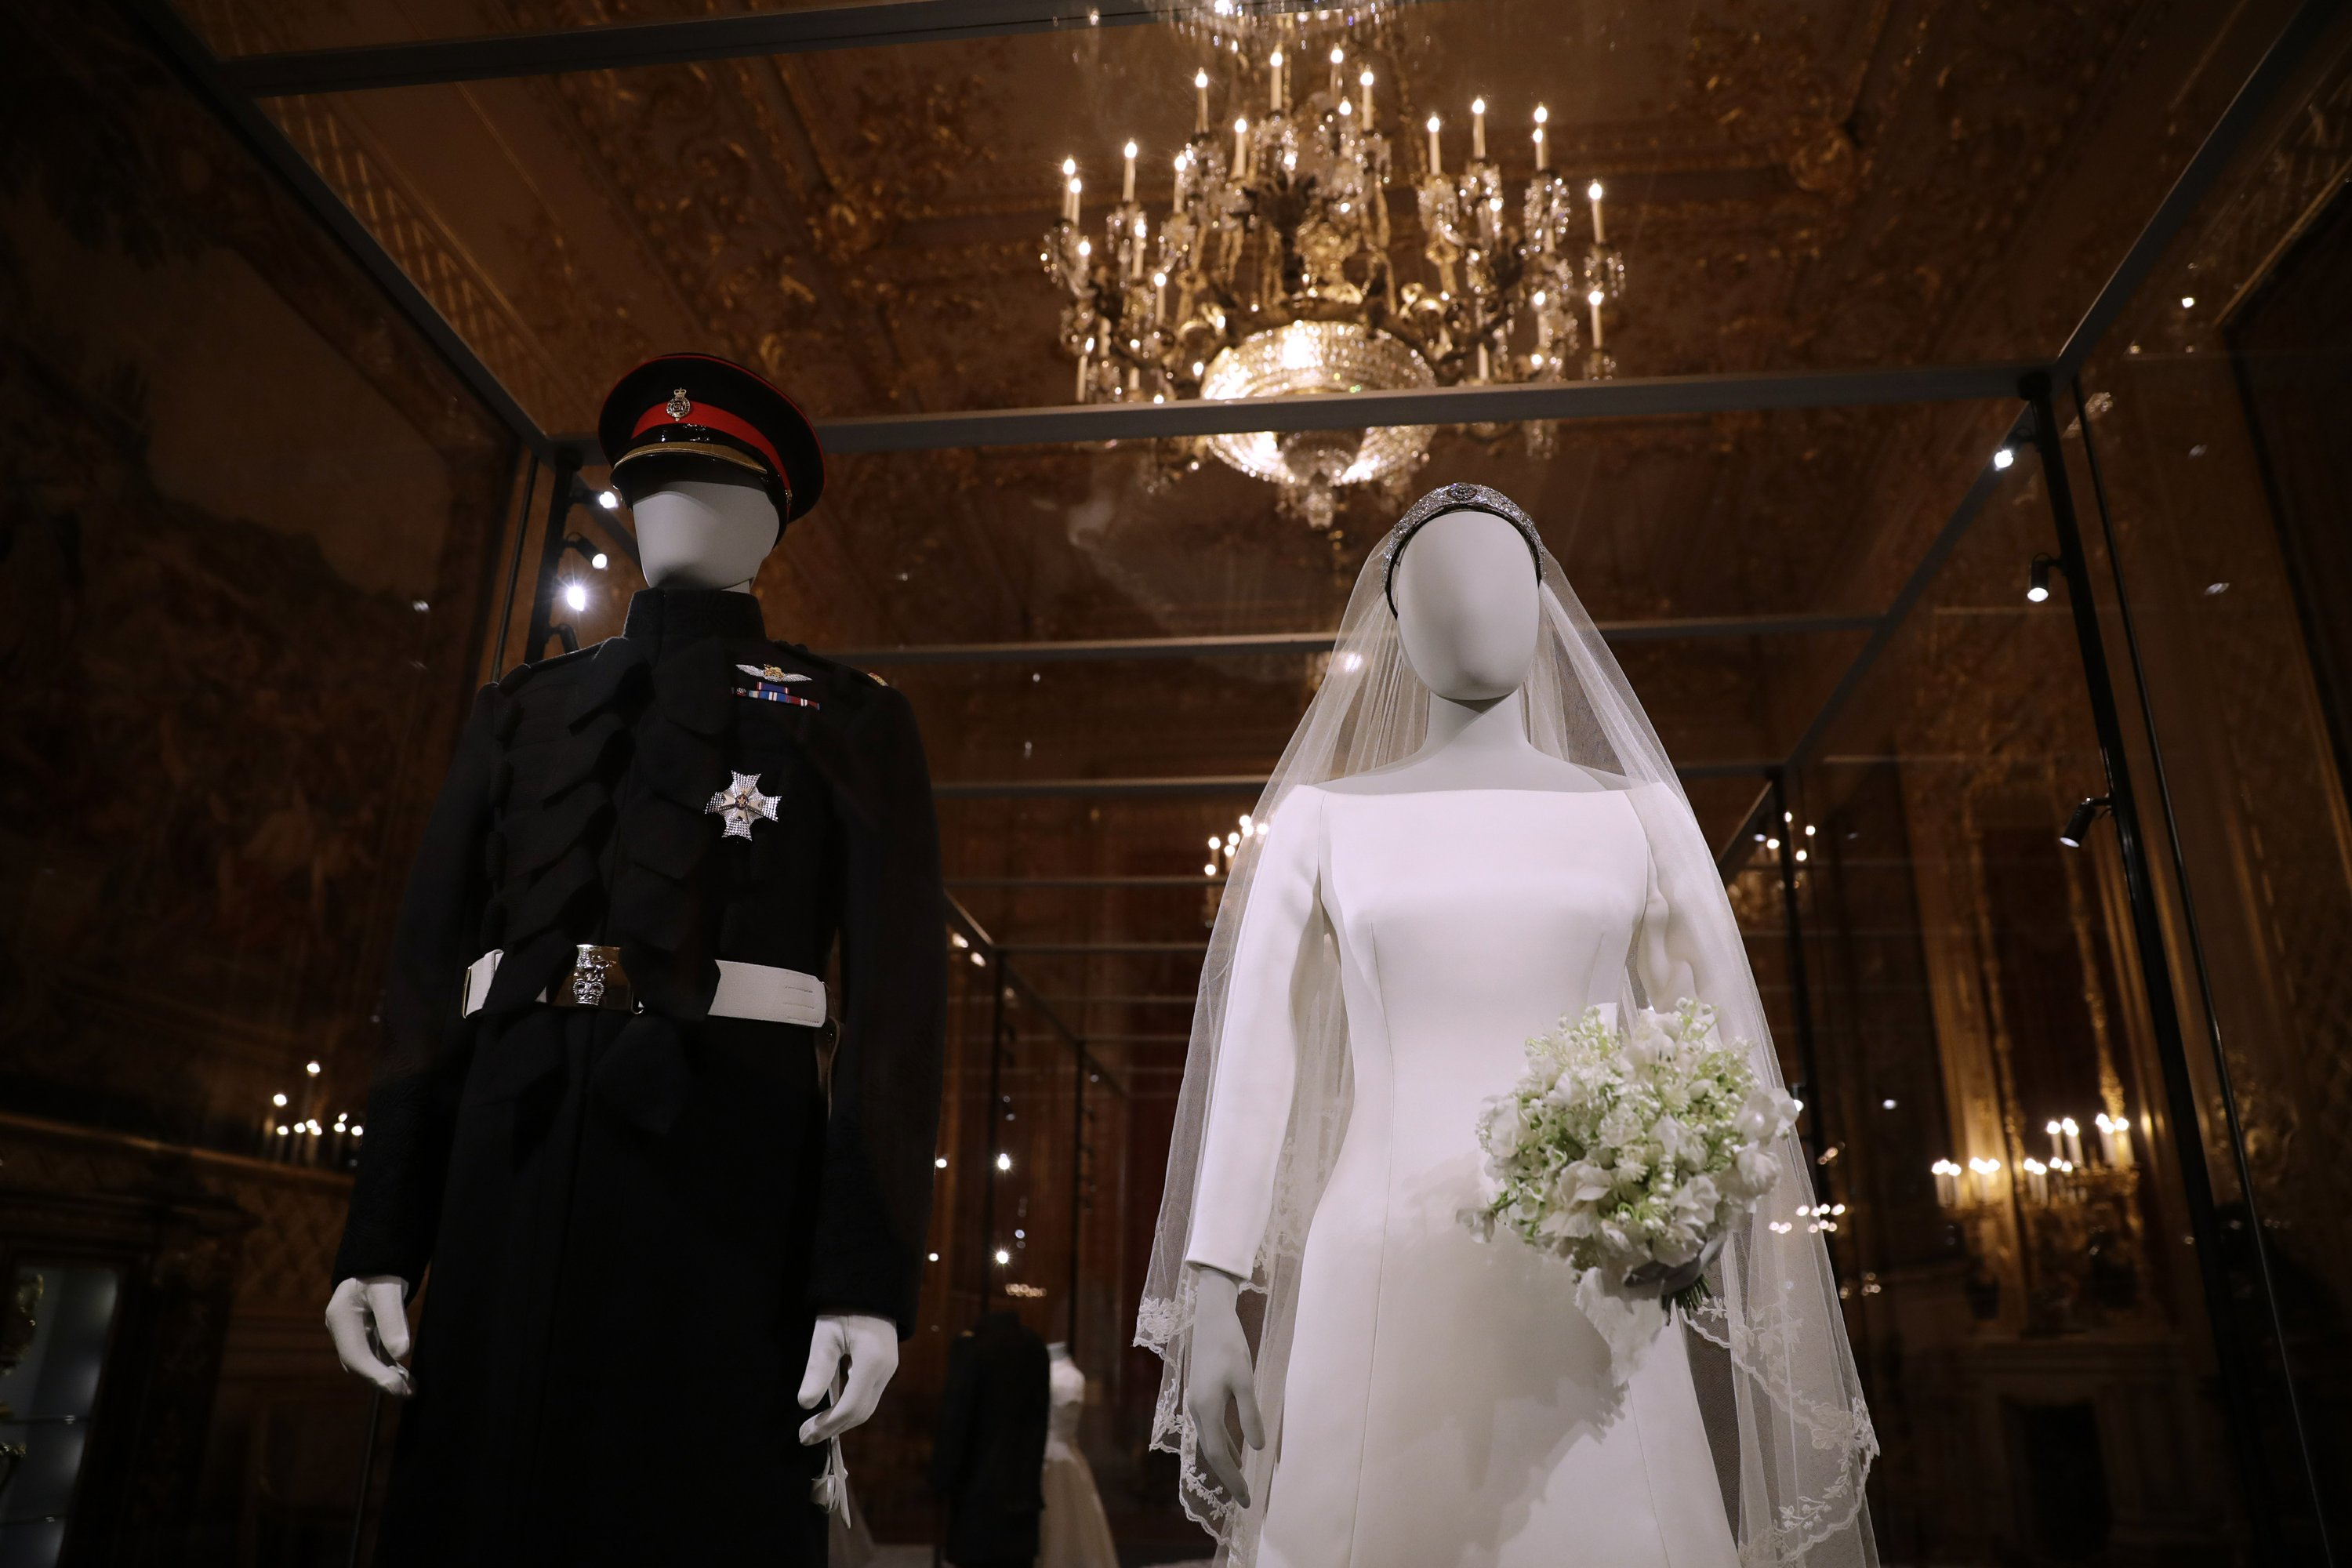 Meghan's wedding gown goes on display at Windsor Castle